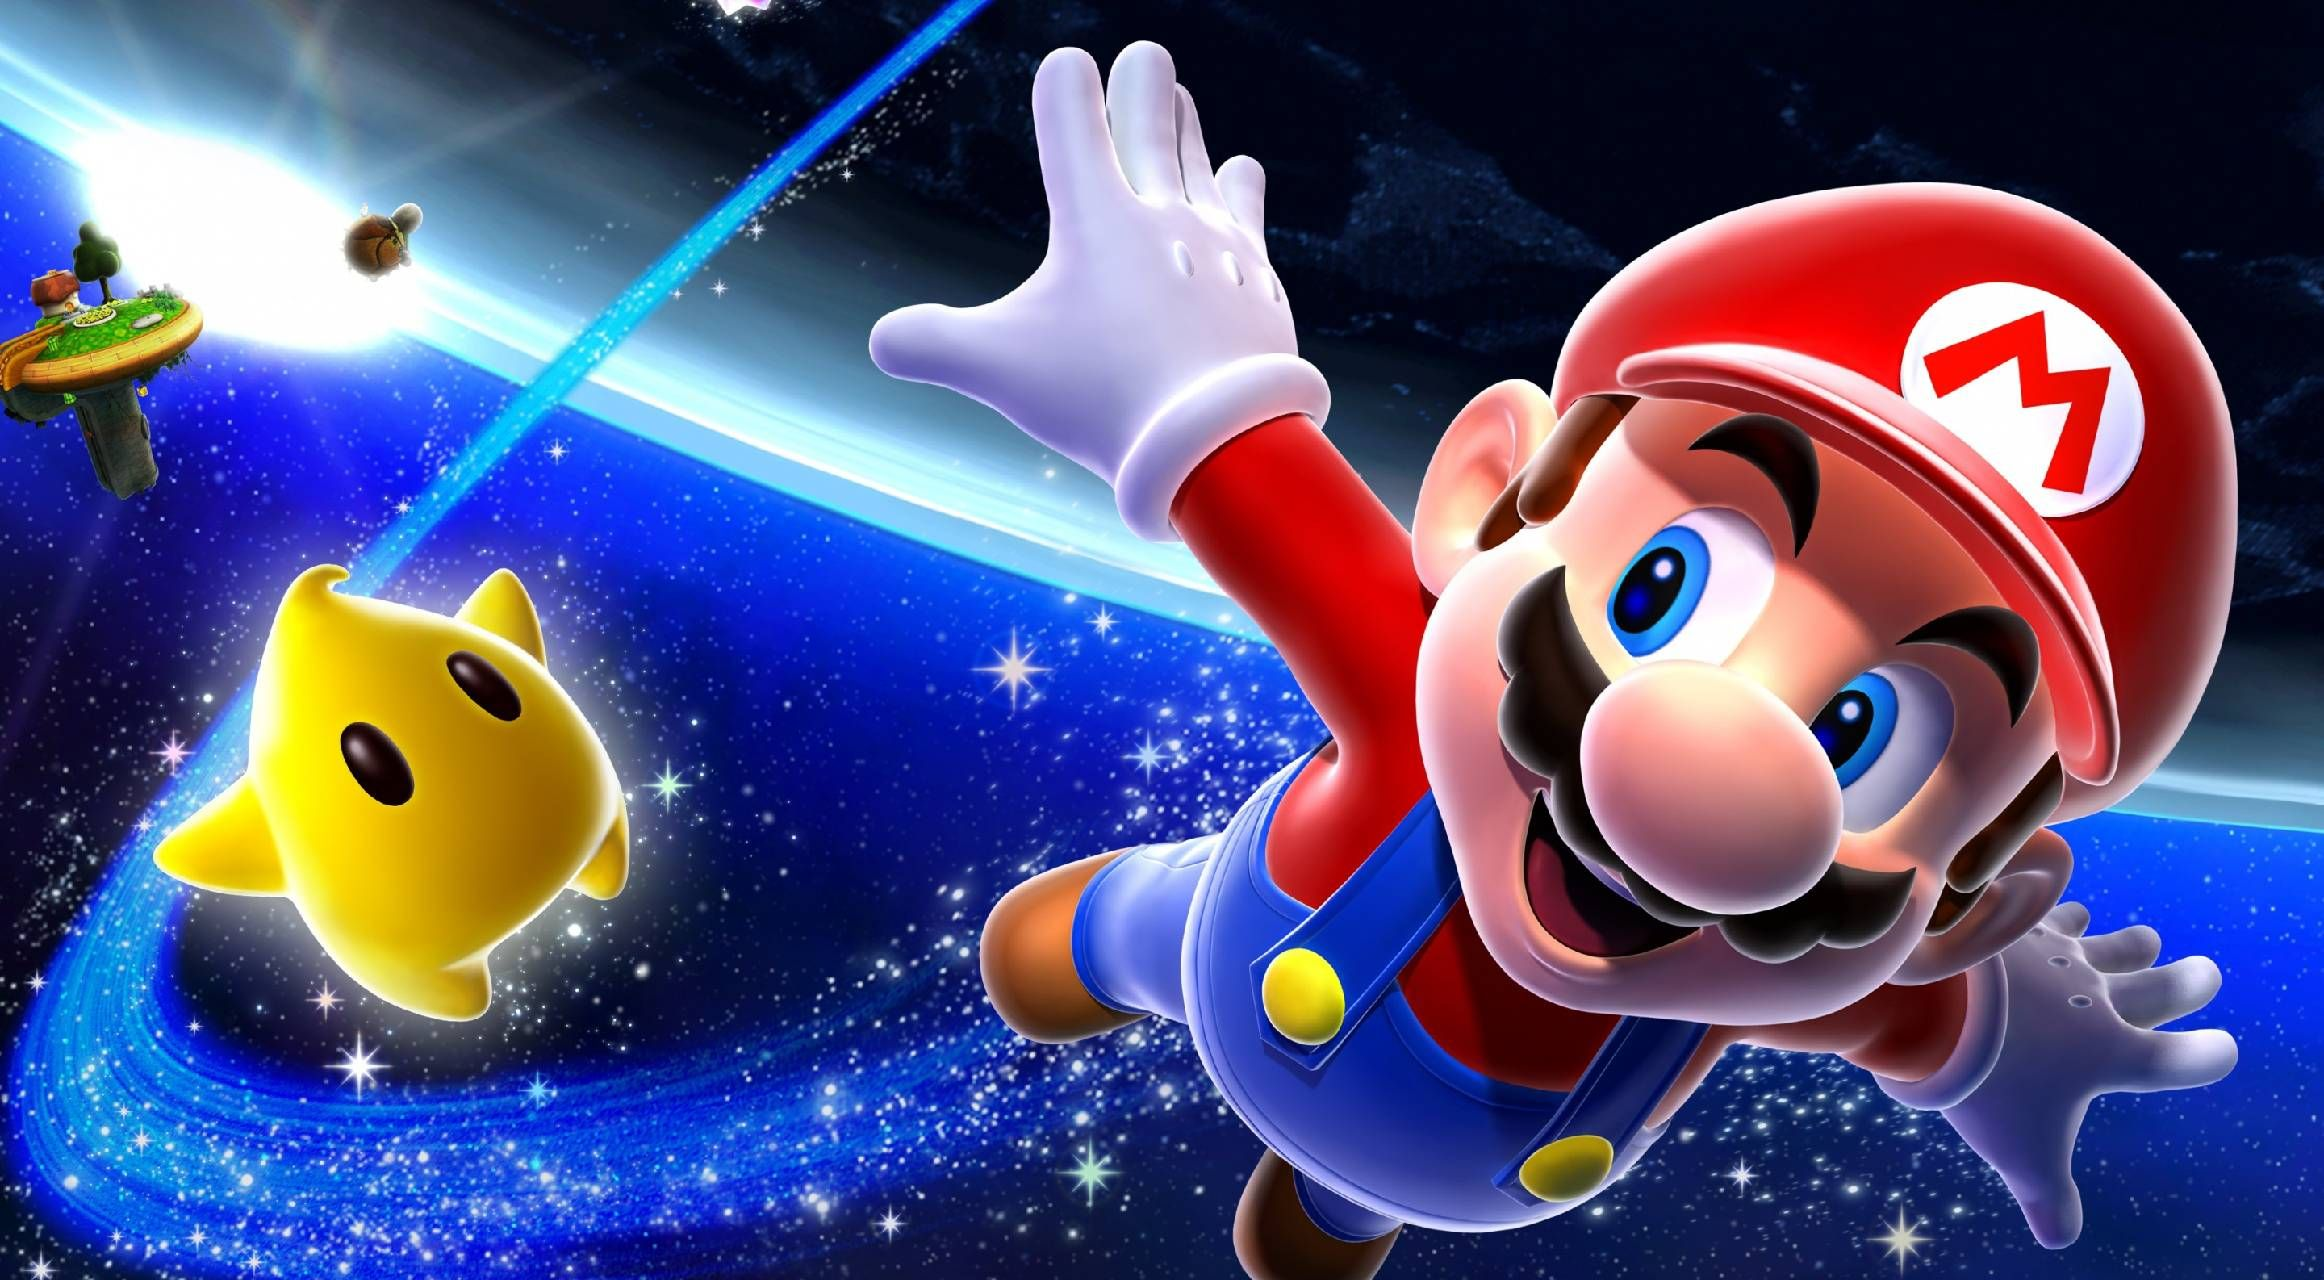 Download Super Mario Wallpaper By Dontox 7b Free On Zedge Now Browse Millions Of Popular 4k Wallpapers Super Mario Sunshine Super Mario Games Mario Games